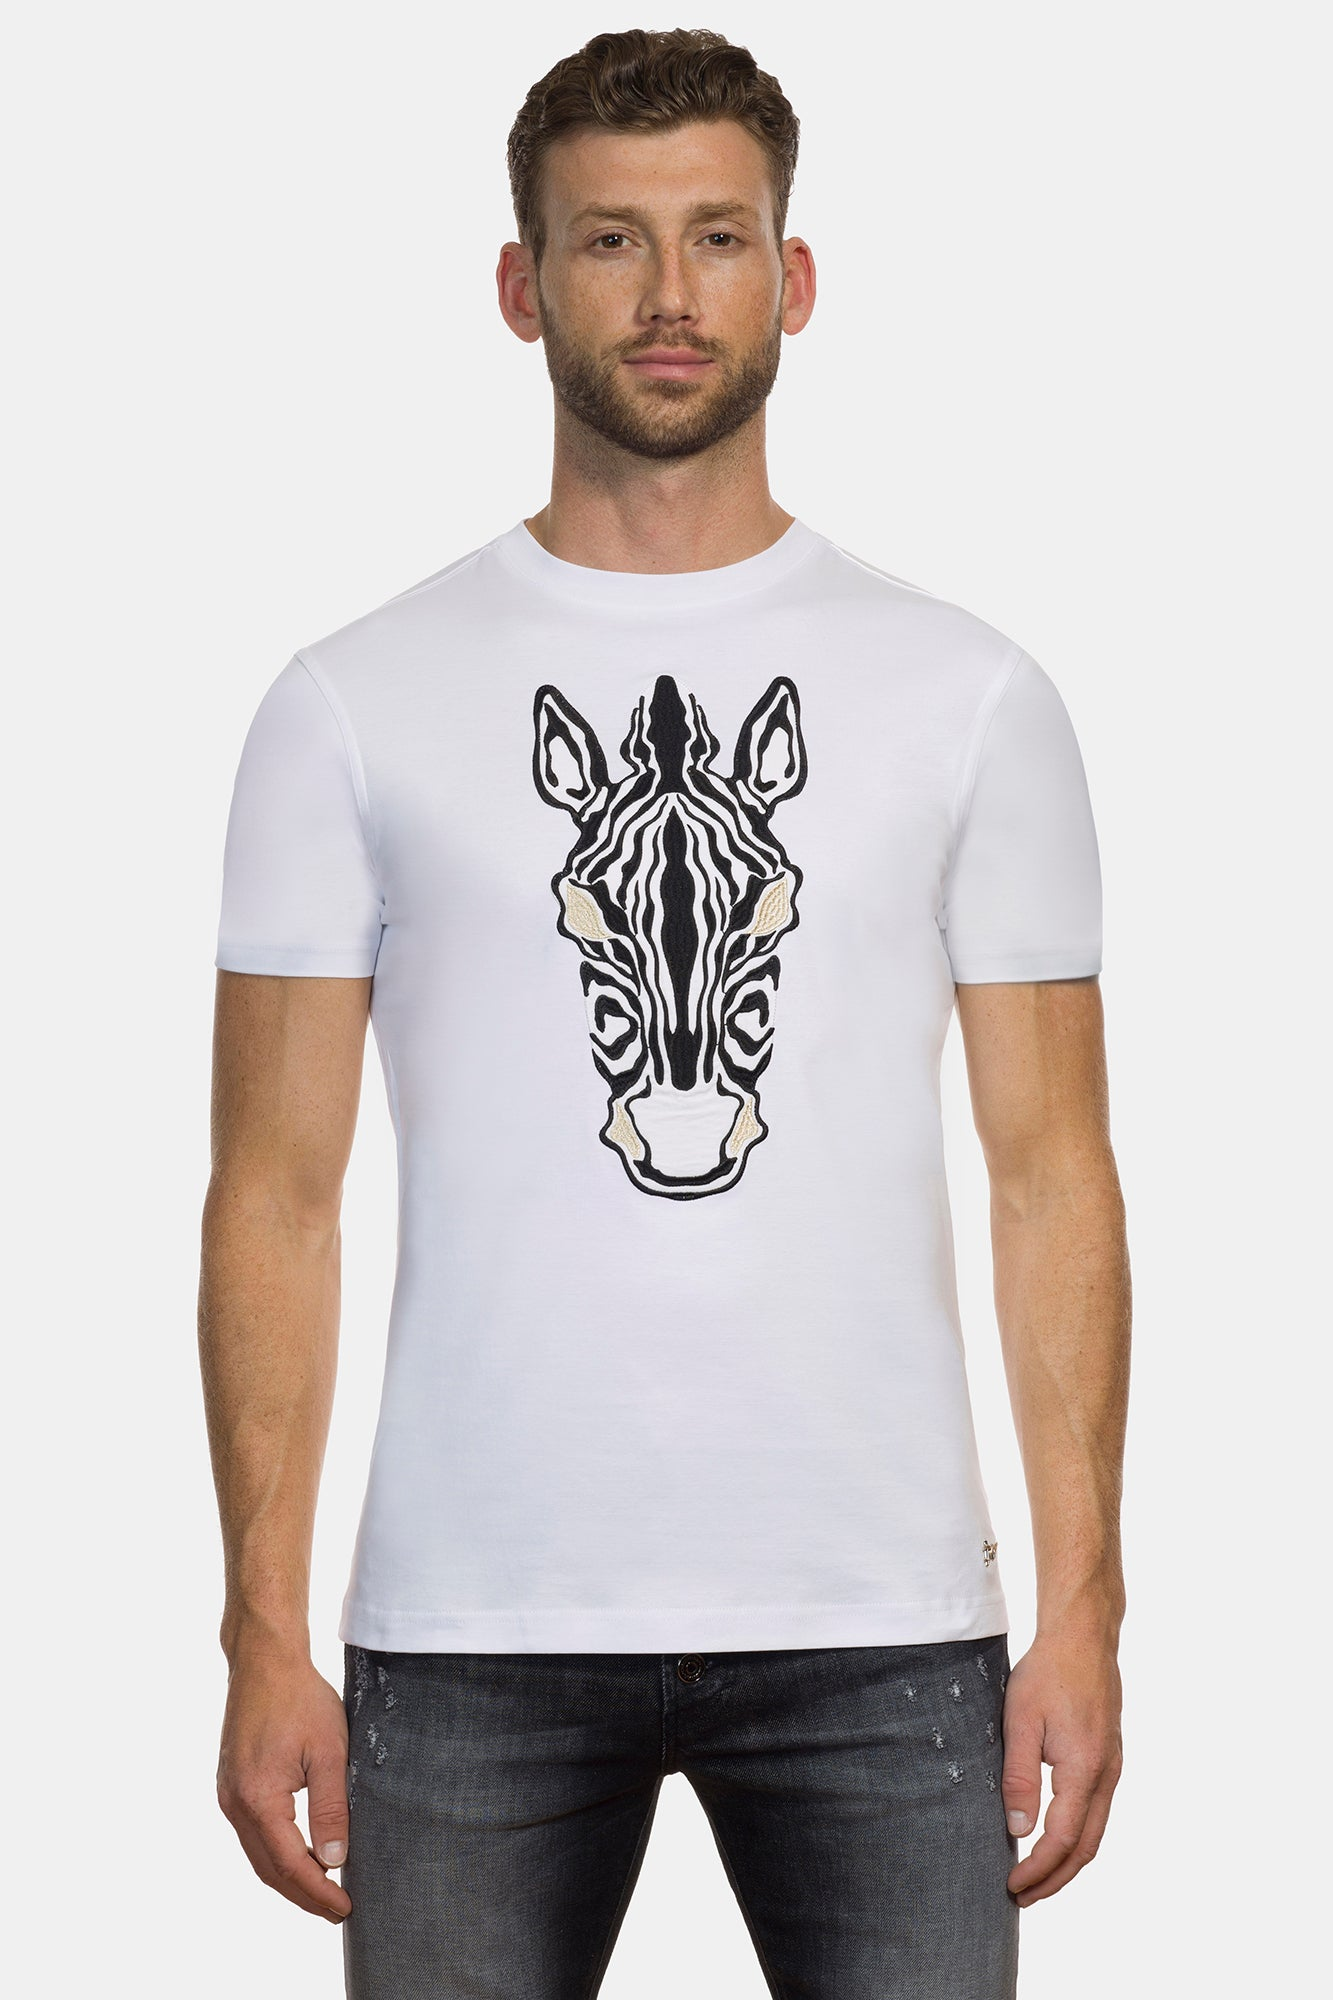 White Equus Burchelli Zebra - DIMORAL OFFICIAL